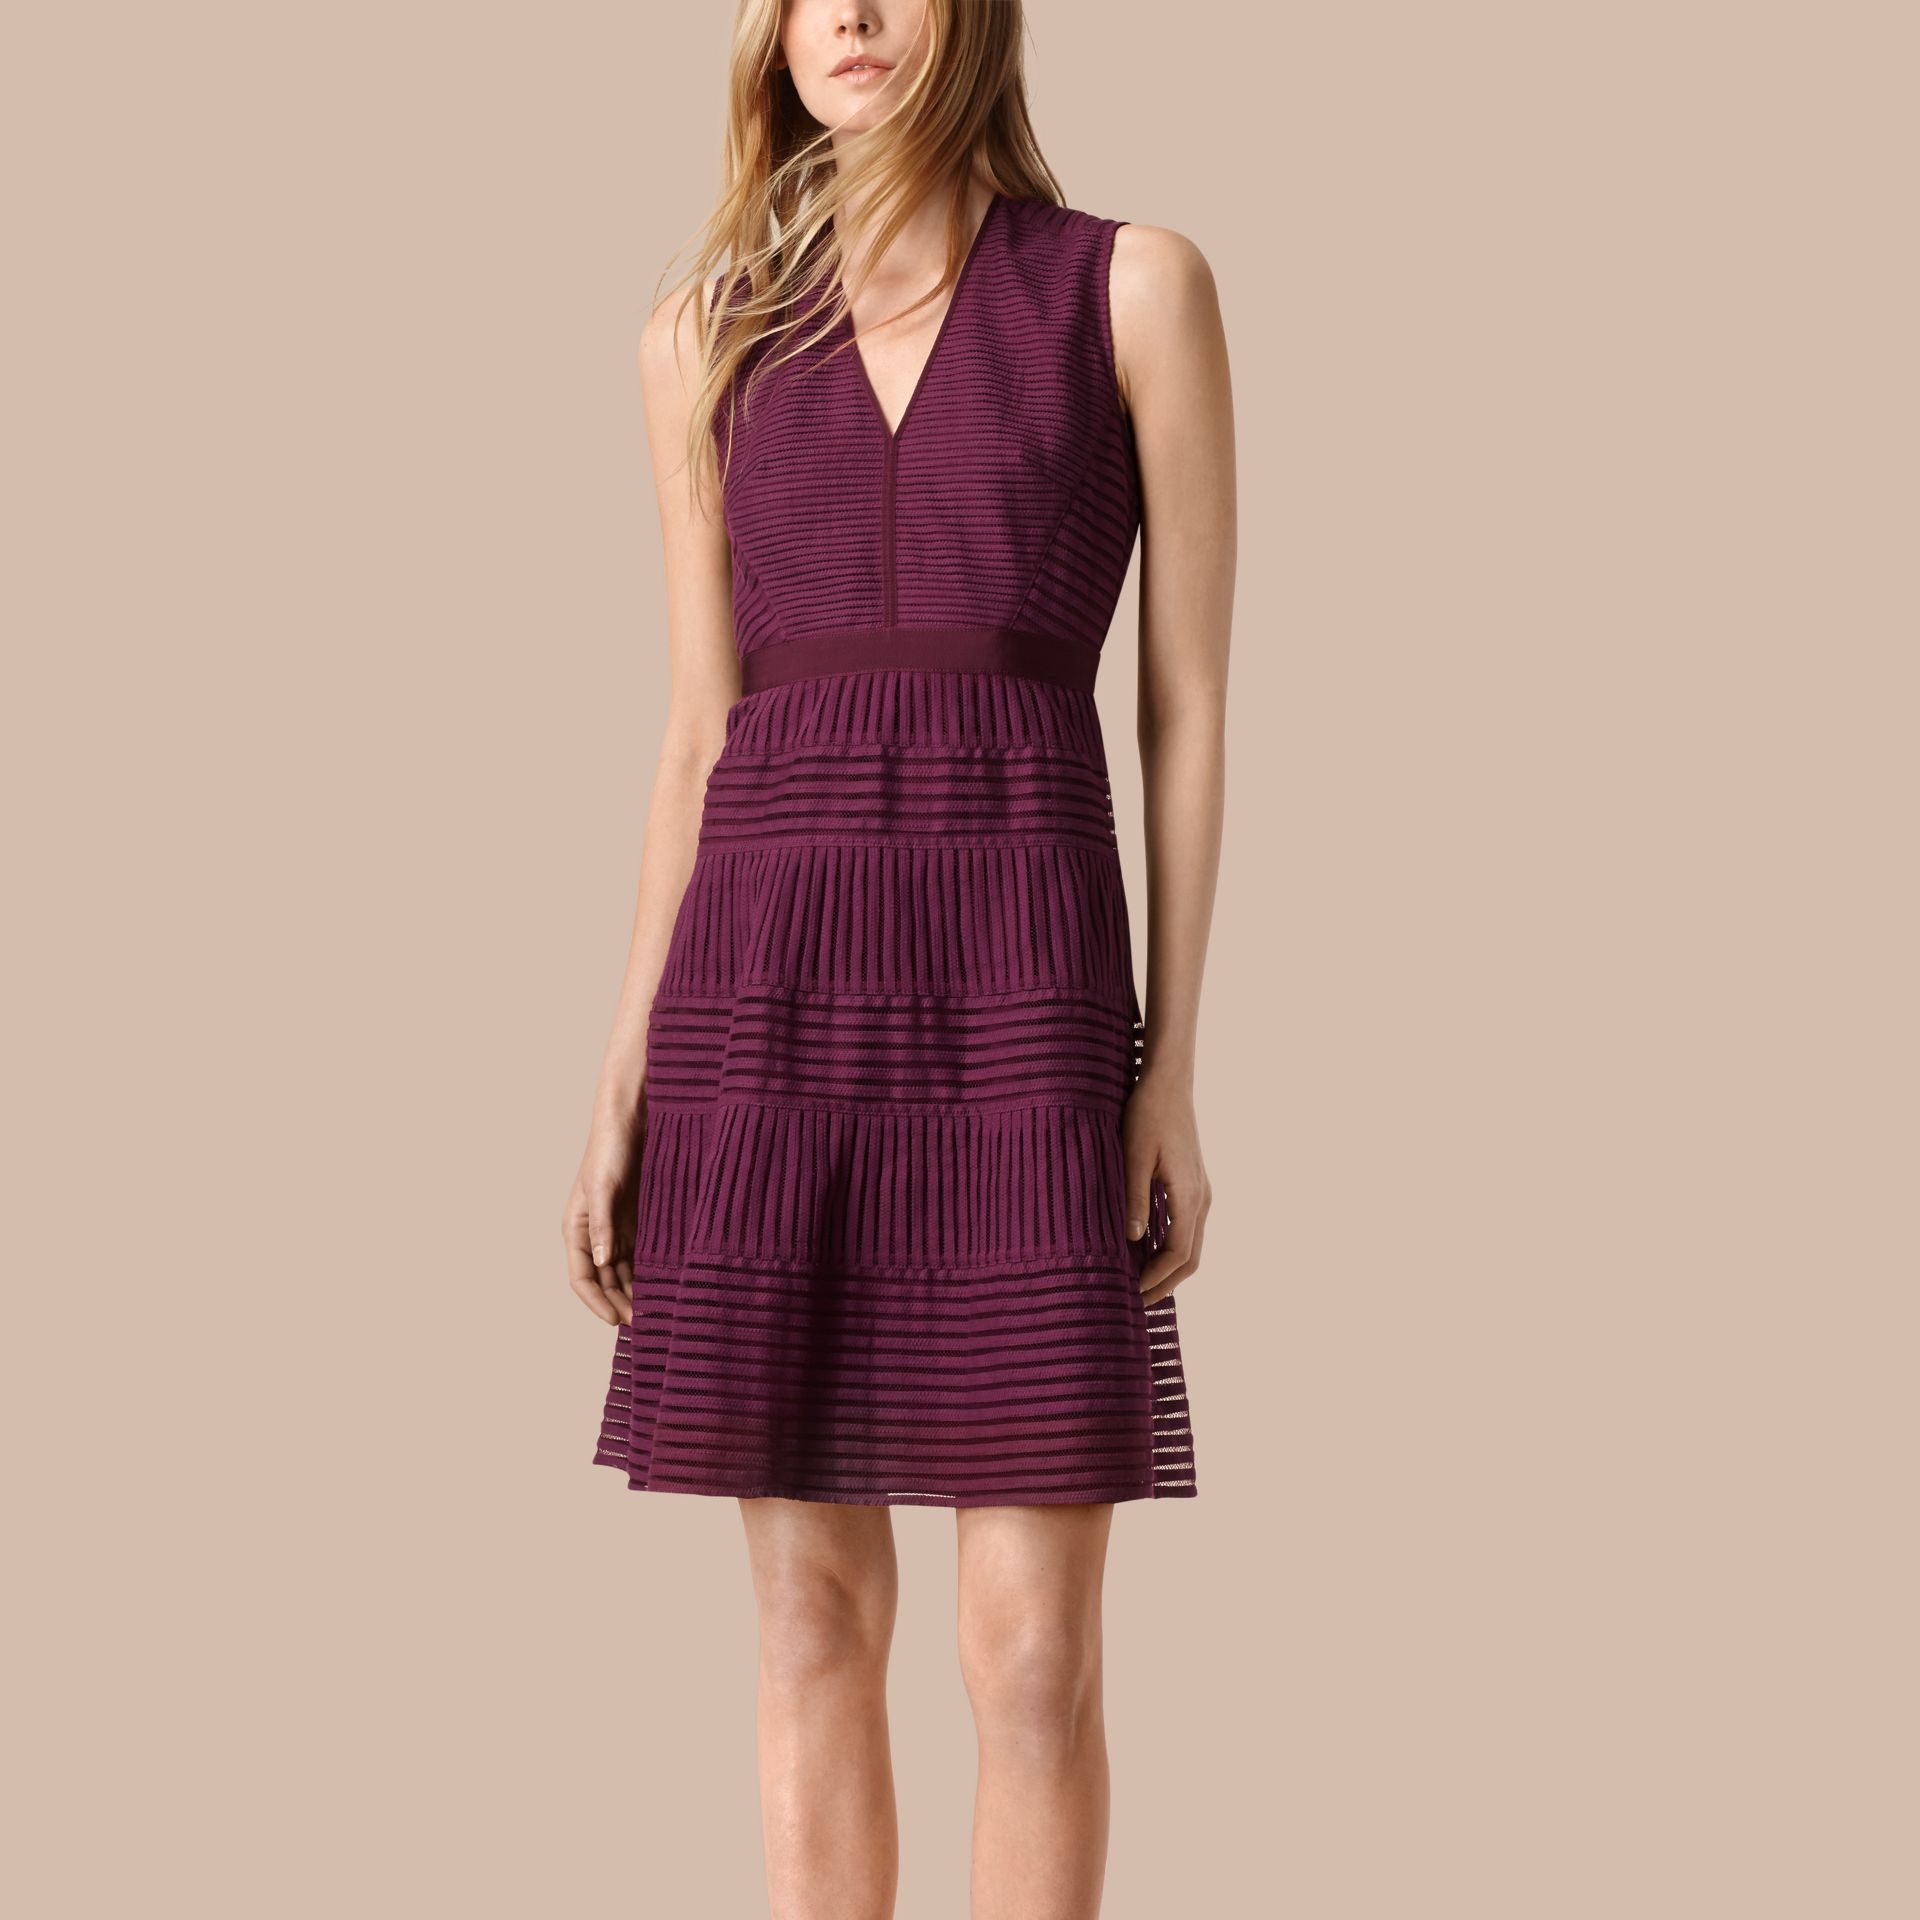 Bright burgundy Panelled Mesh Dress Bright Burgundy - gallery image 1